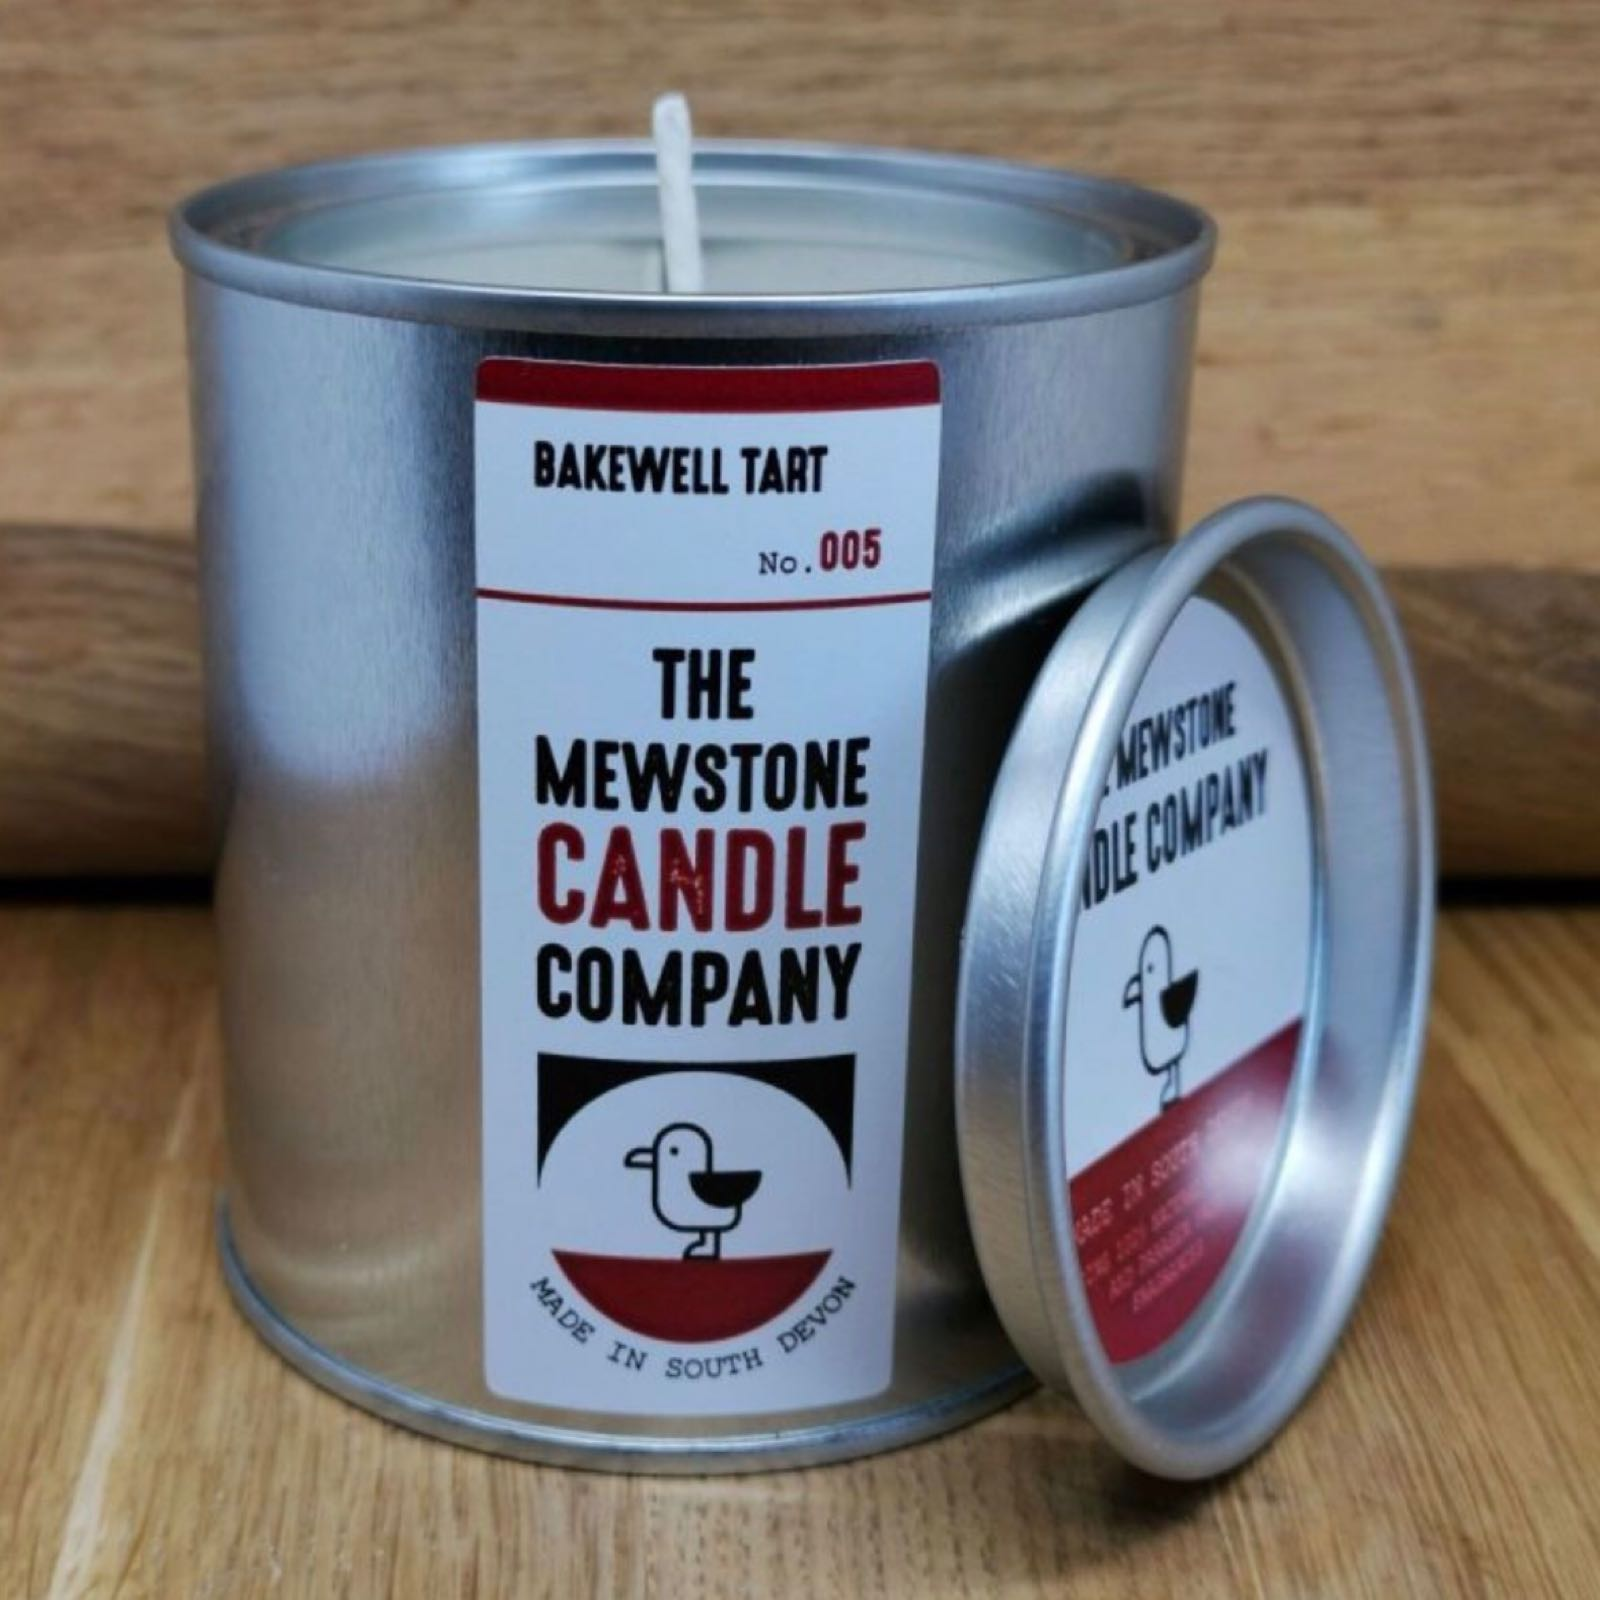 'Bakewell Tart' Paint Tin Candle